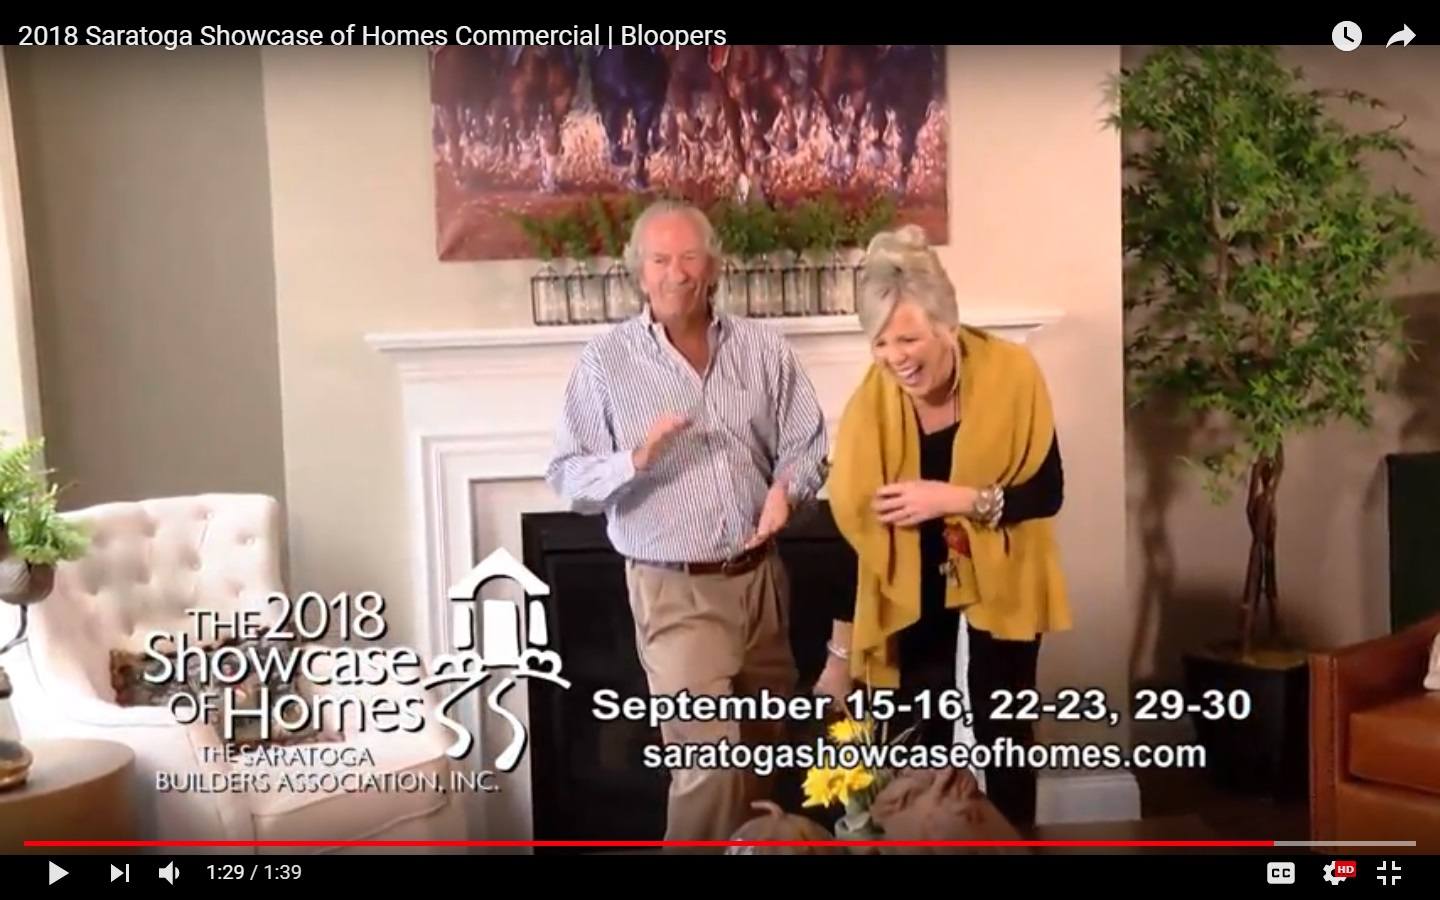 2018 Showcase of Homes blooper reel, featuring Liz Bishop and Barry Potoker